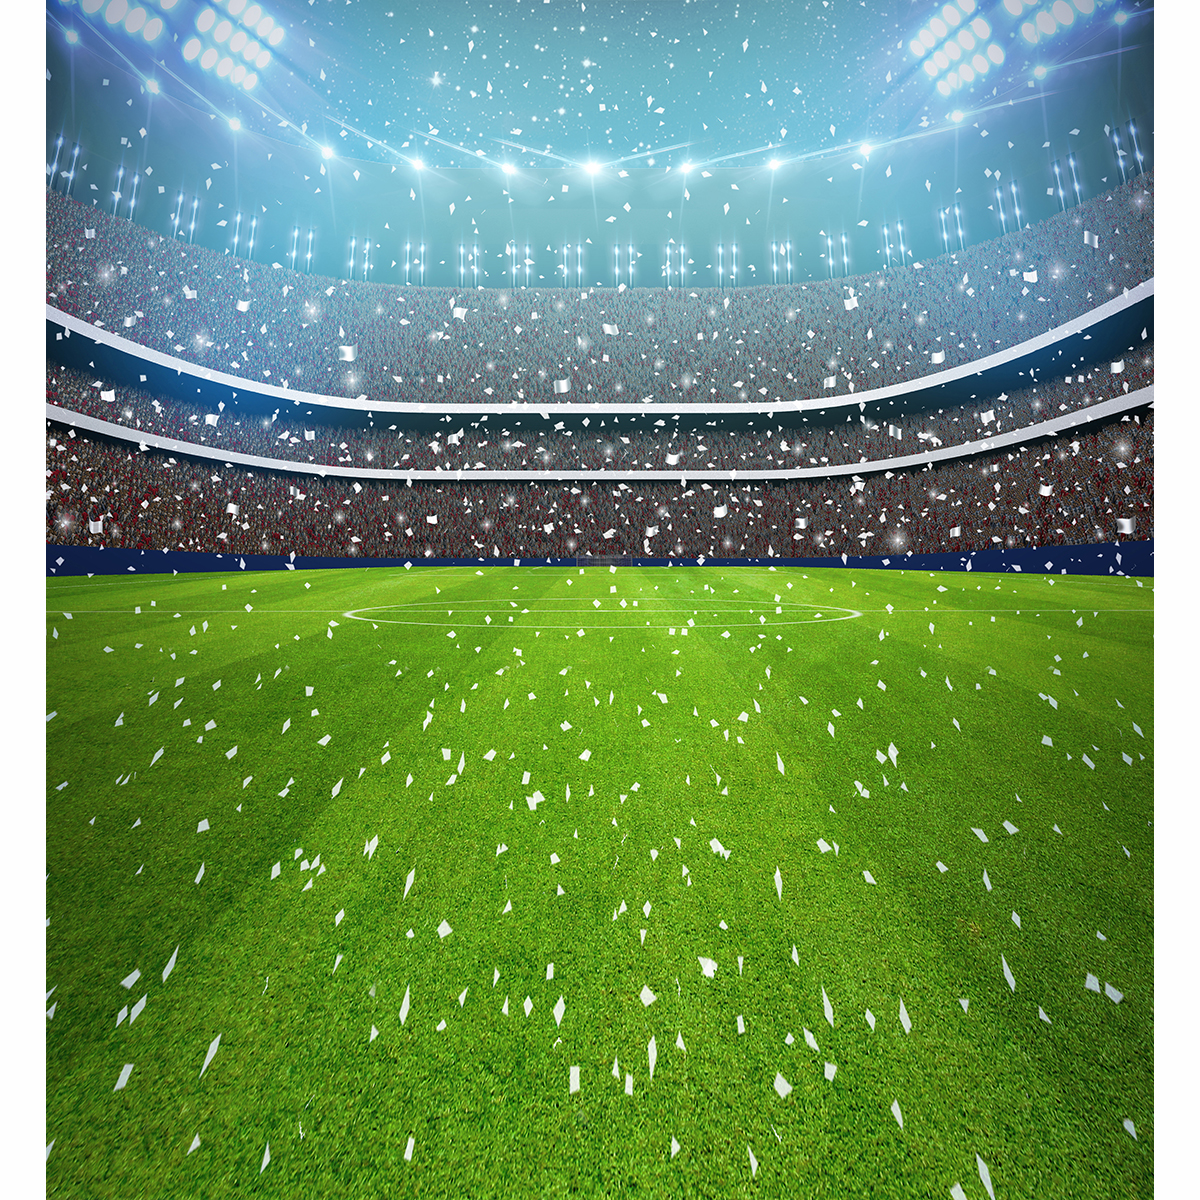 Football Stadium Lights Fireworks Photography Background